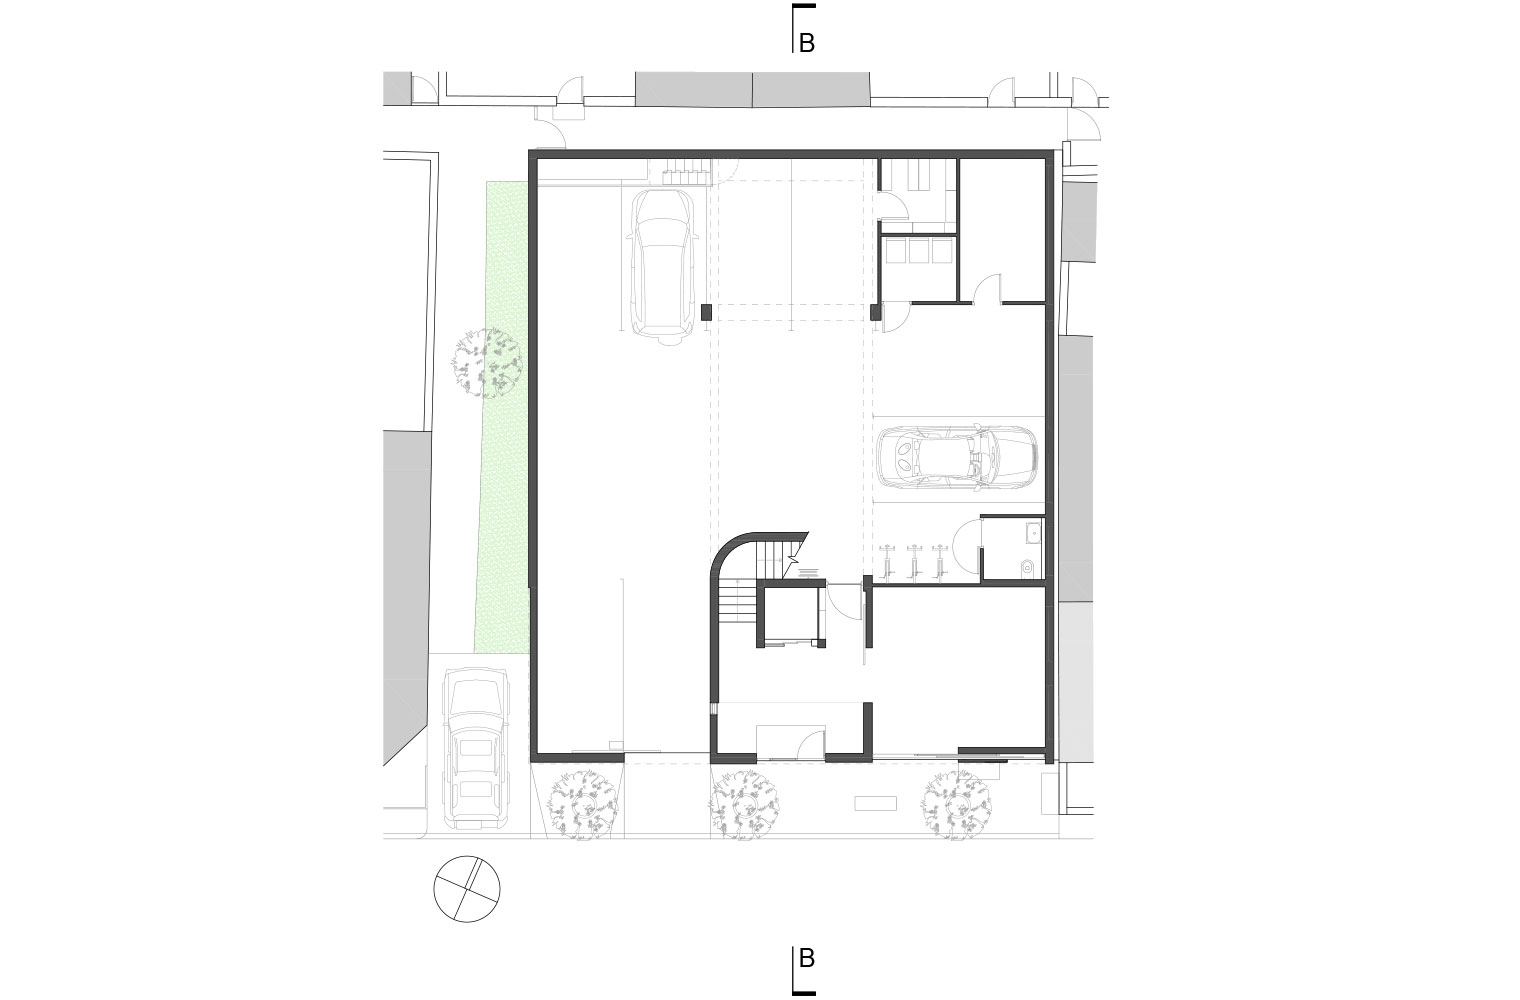 236-Buitengracht-Ground Floor Plan